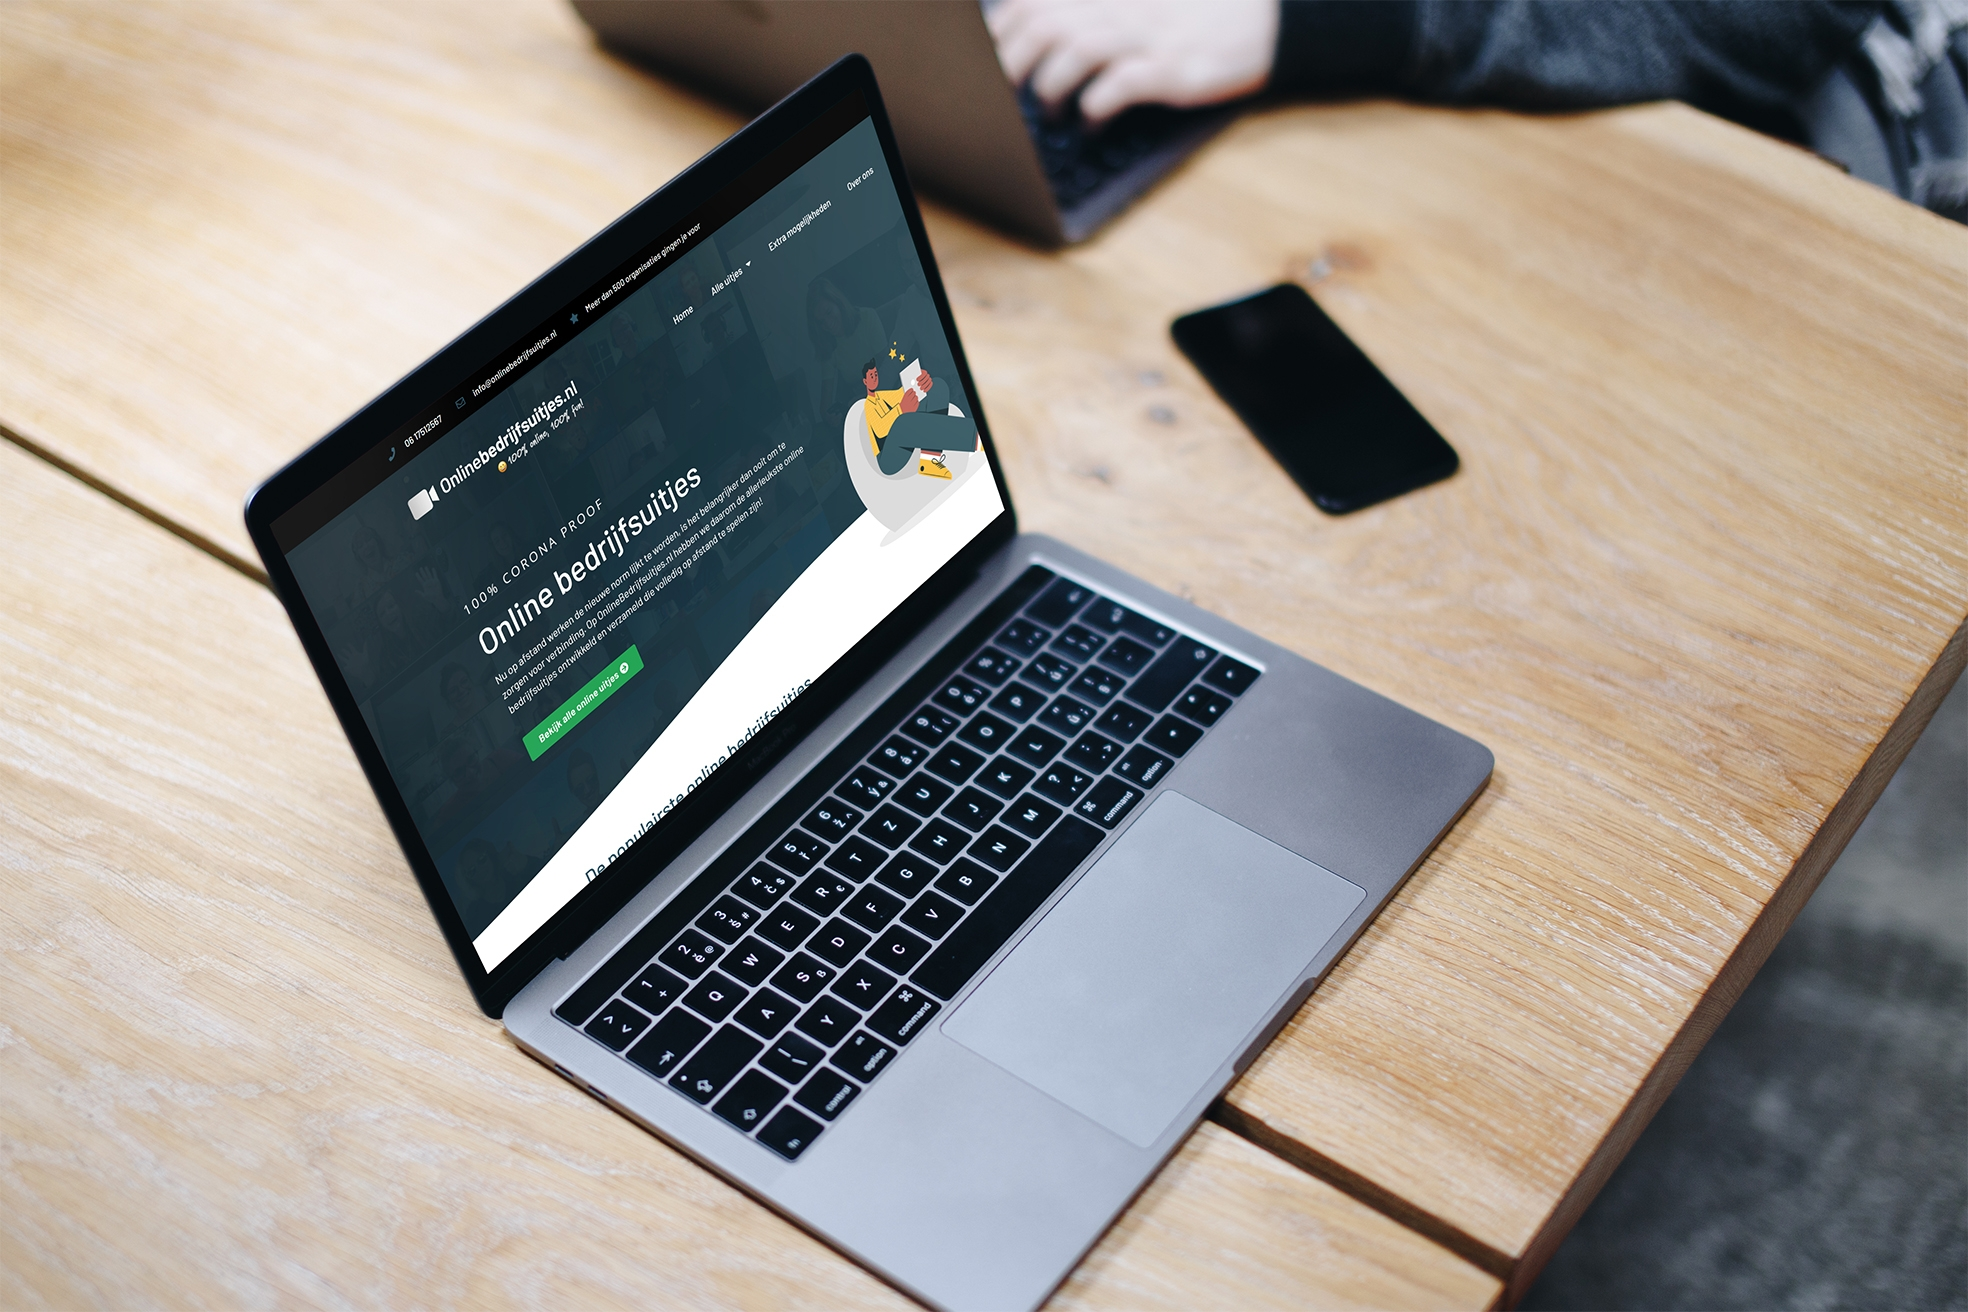 Macbook pro space gray mockup on the wooden table